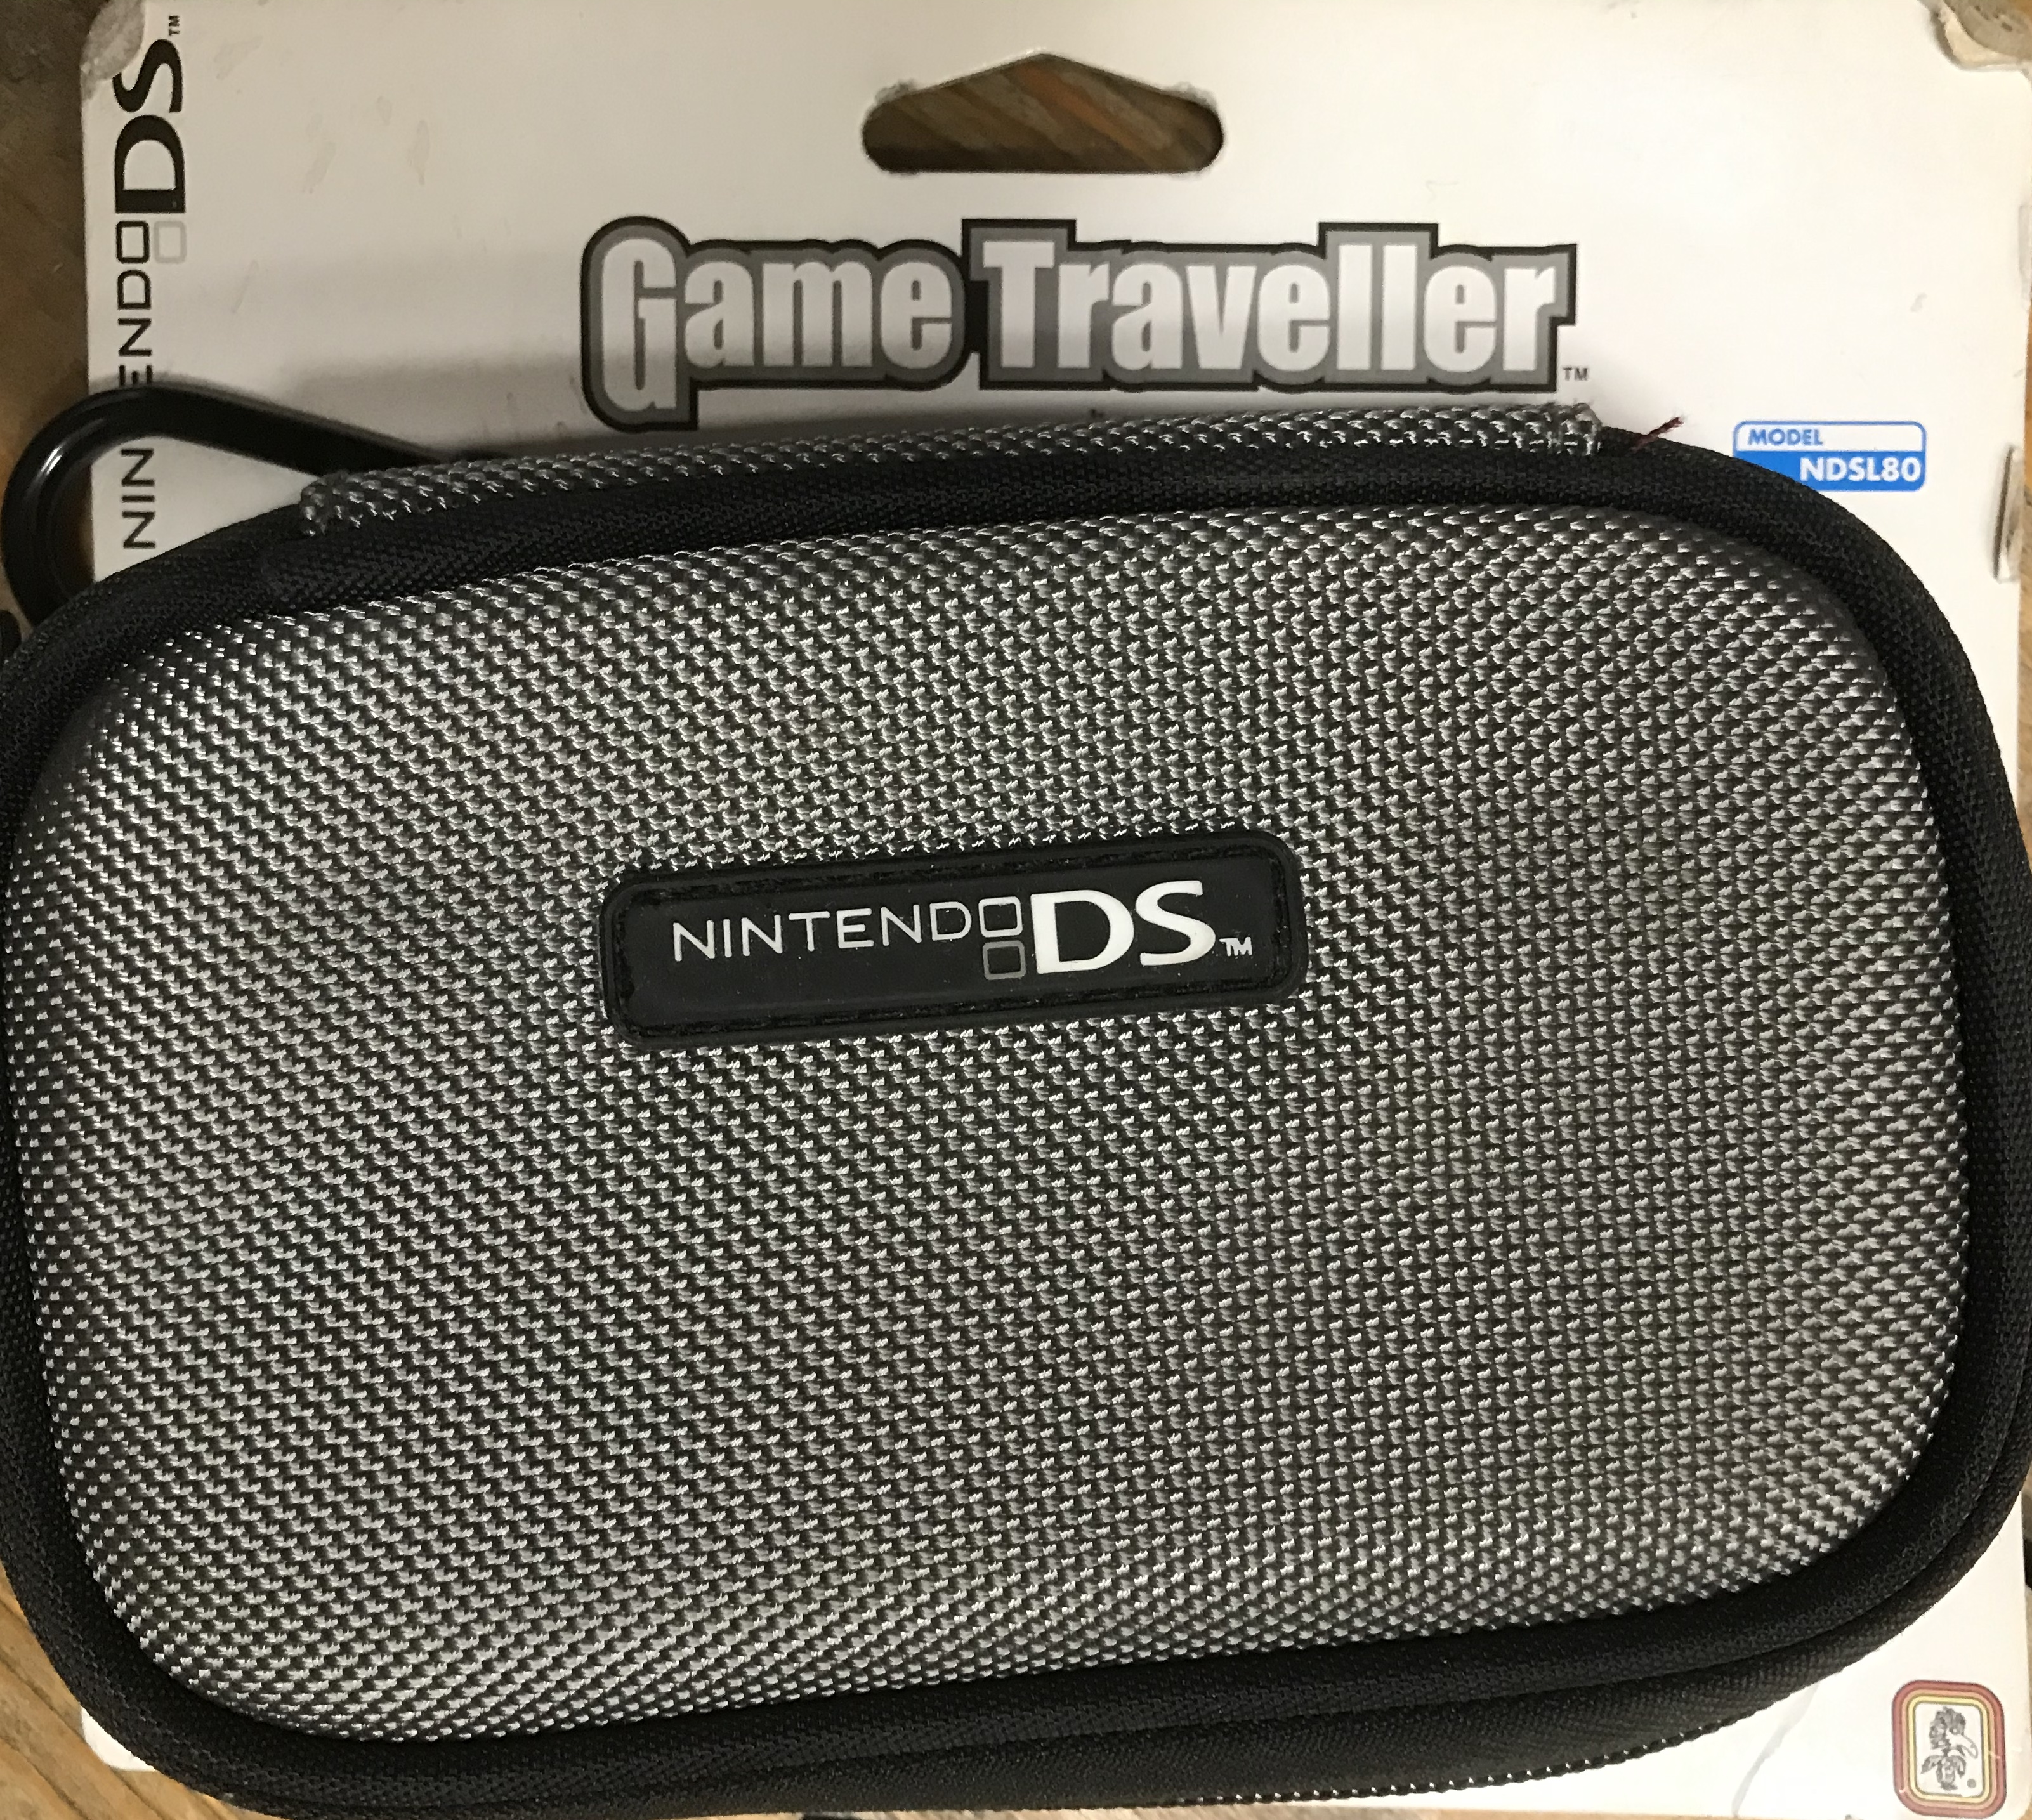 Nintendo DS Light Carrying Case NDSL 80 (Szürke)